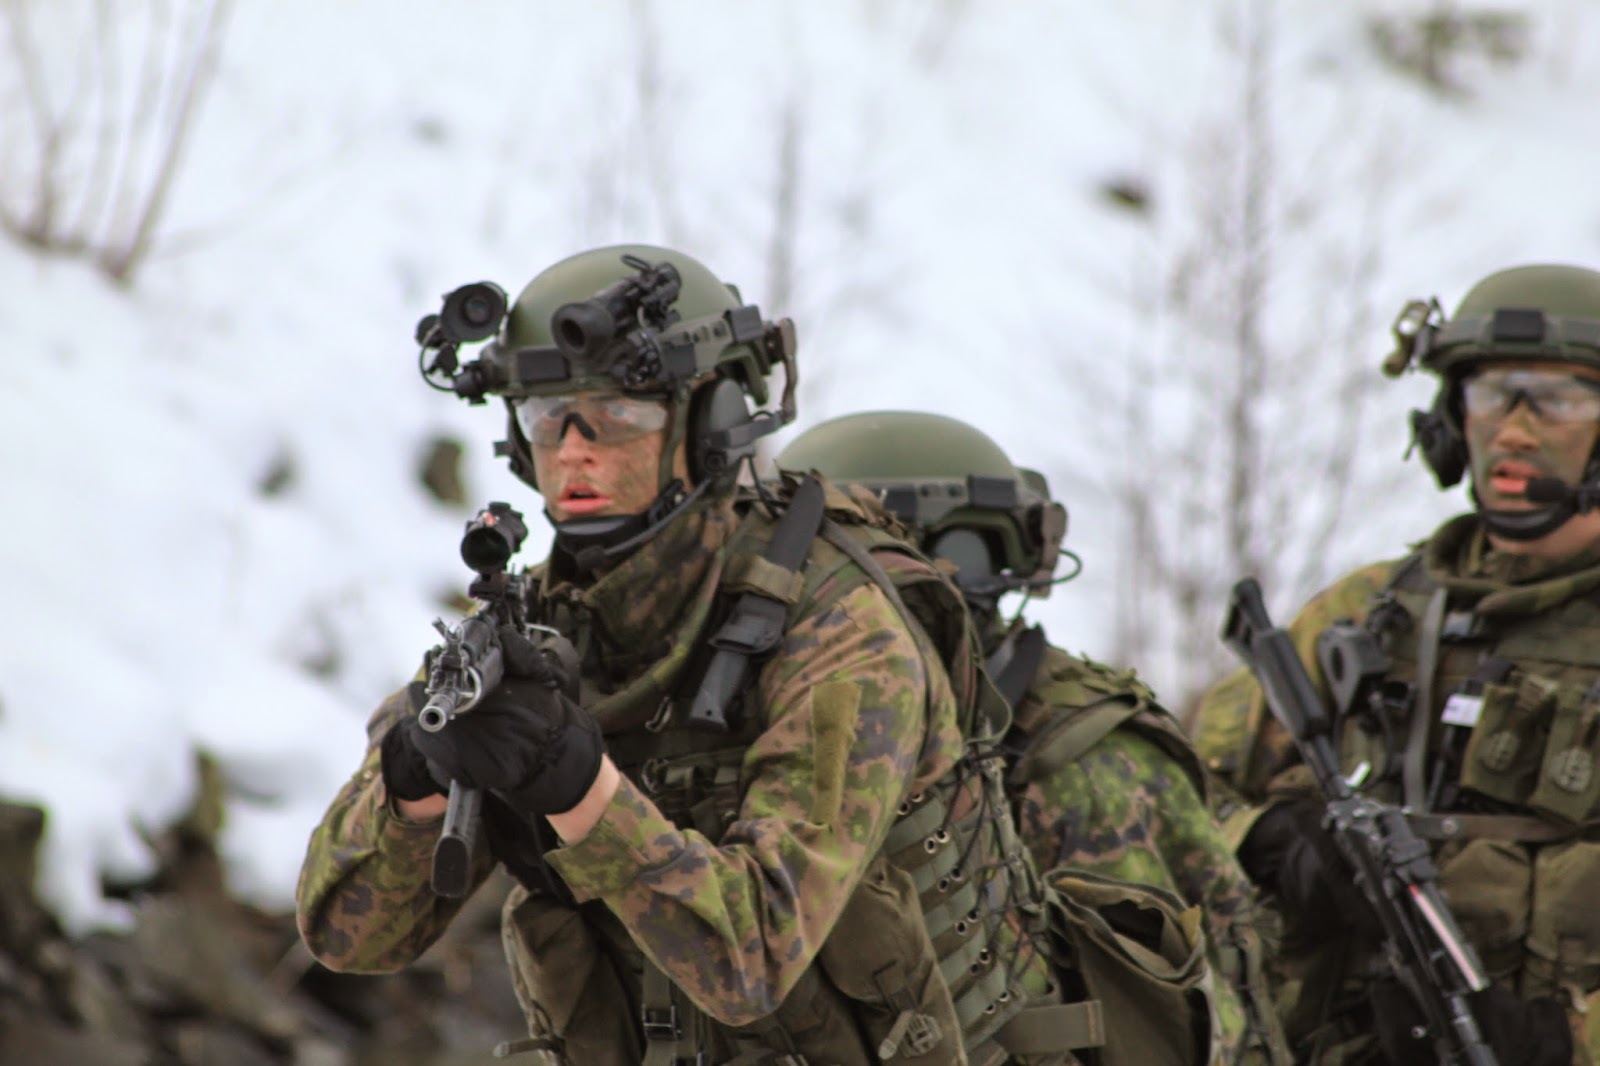 Finnish Special Forces with new Helmet System 2020 ...   1600 x 1066 jpeg 157kB